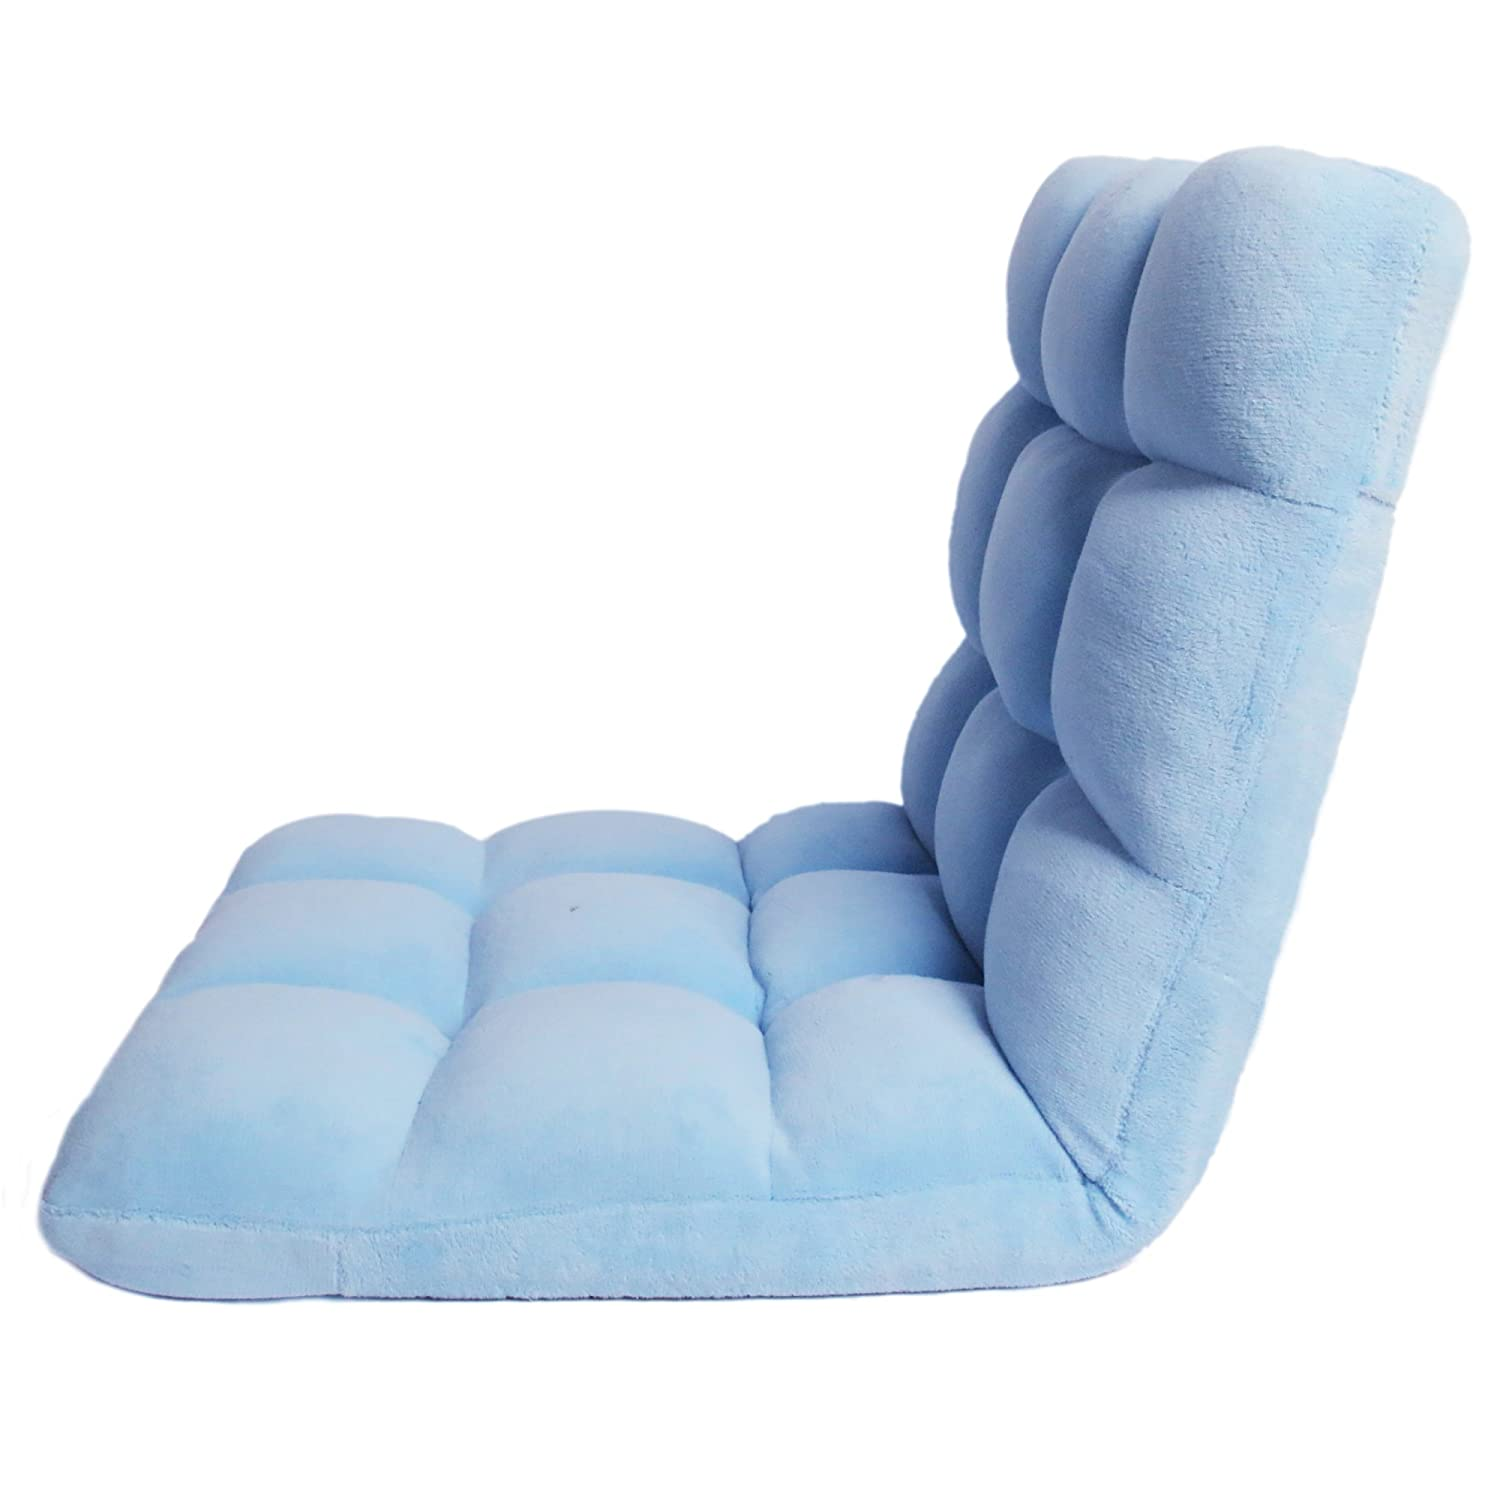 Amazon.com: loungie Microplush silla reclinable – Esterilla ...